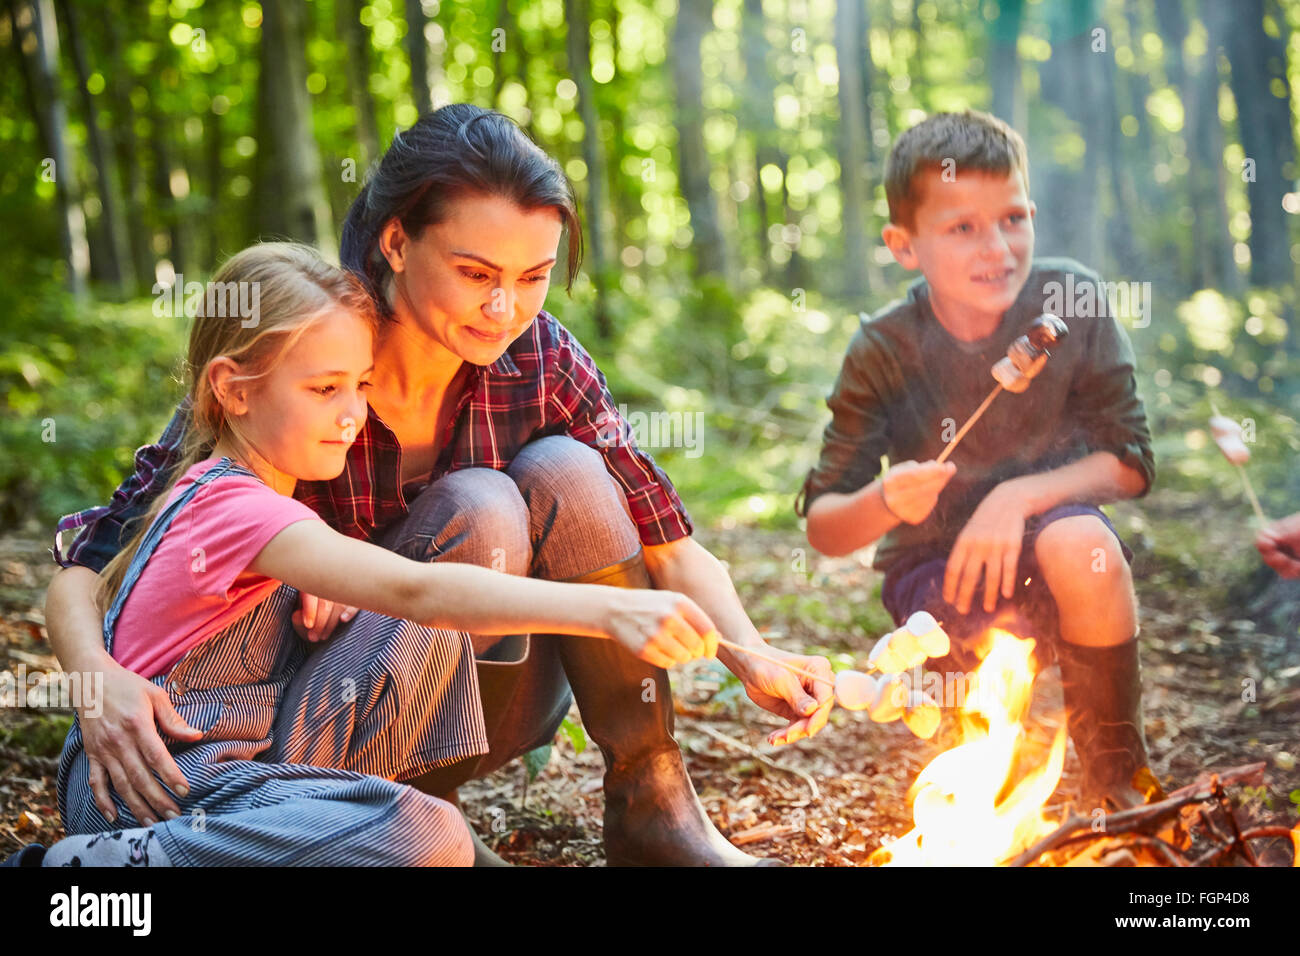 Family roasting marshmallows at campfire in forest - Stock Image